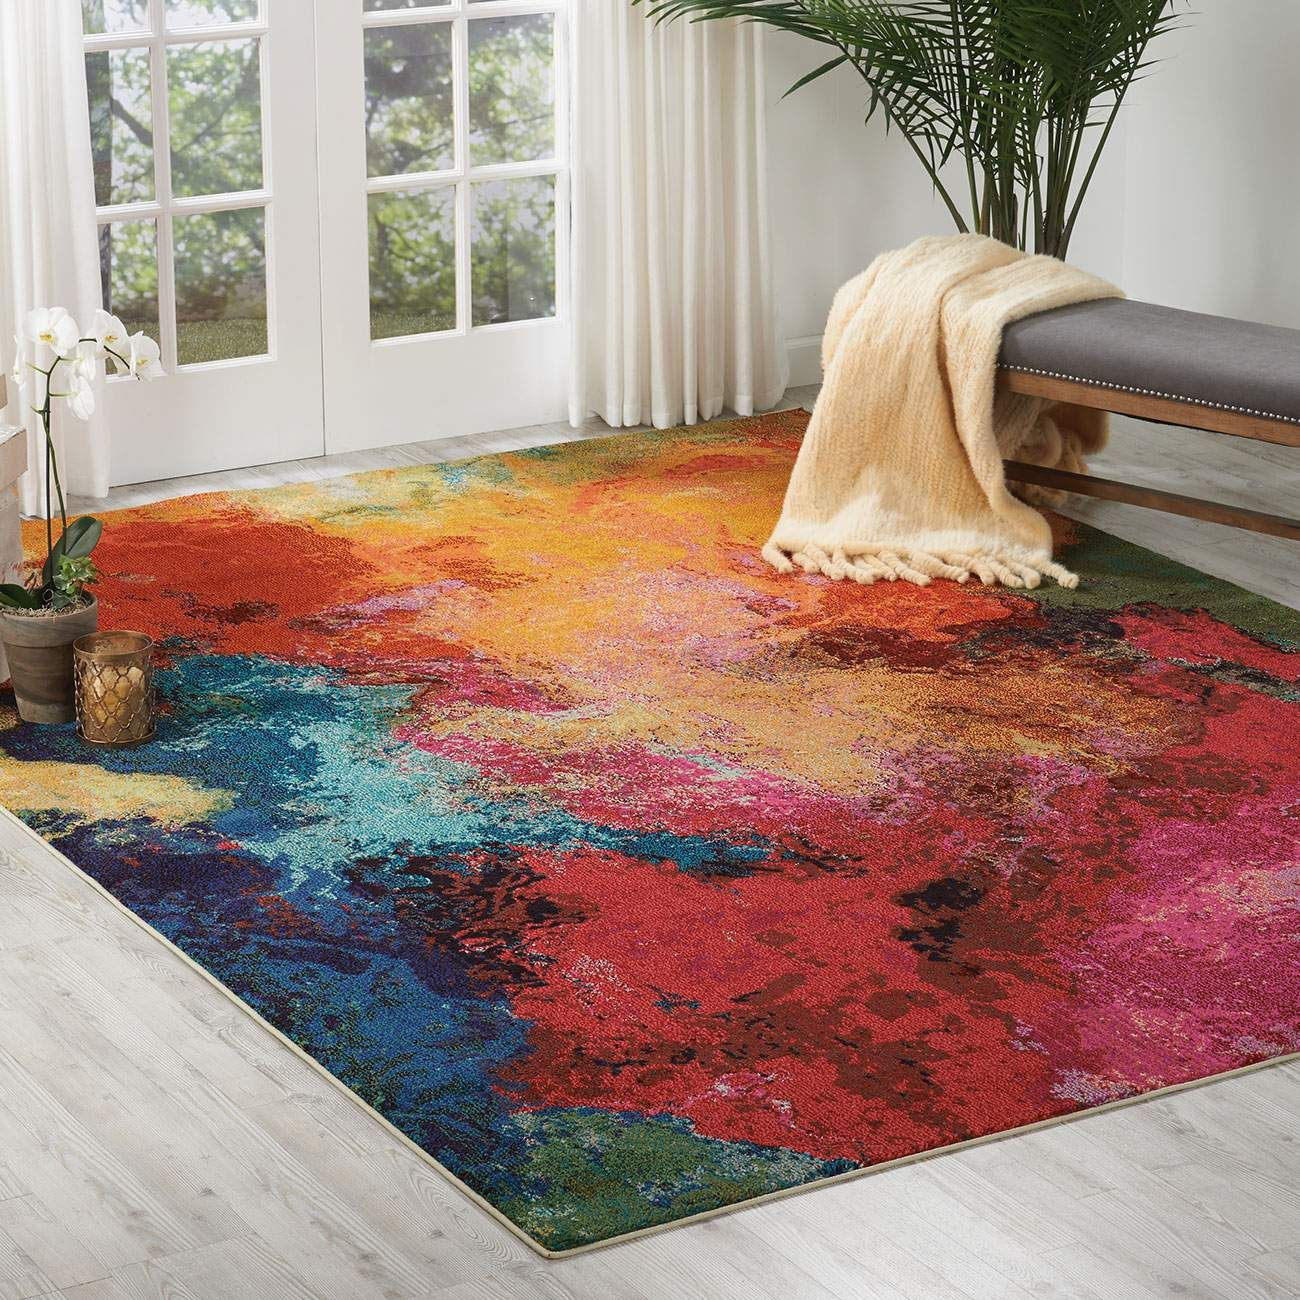 Graphic Rugs Graphic Area Rugs Therugshopuk